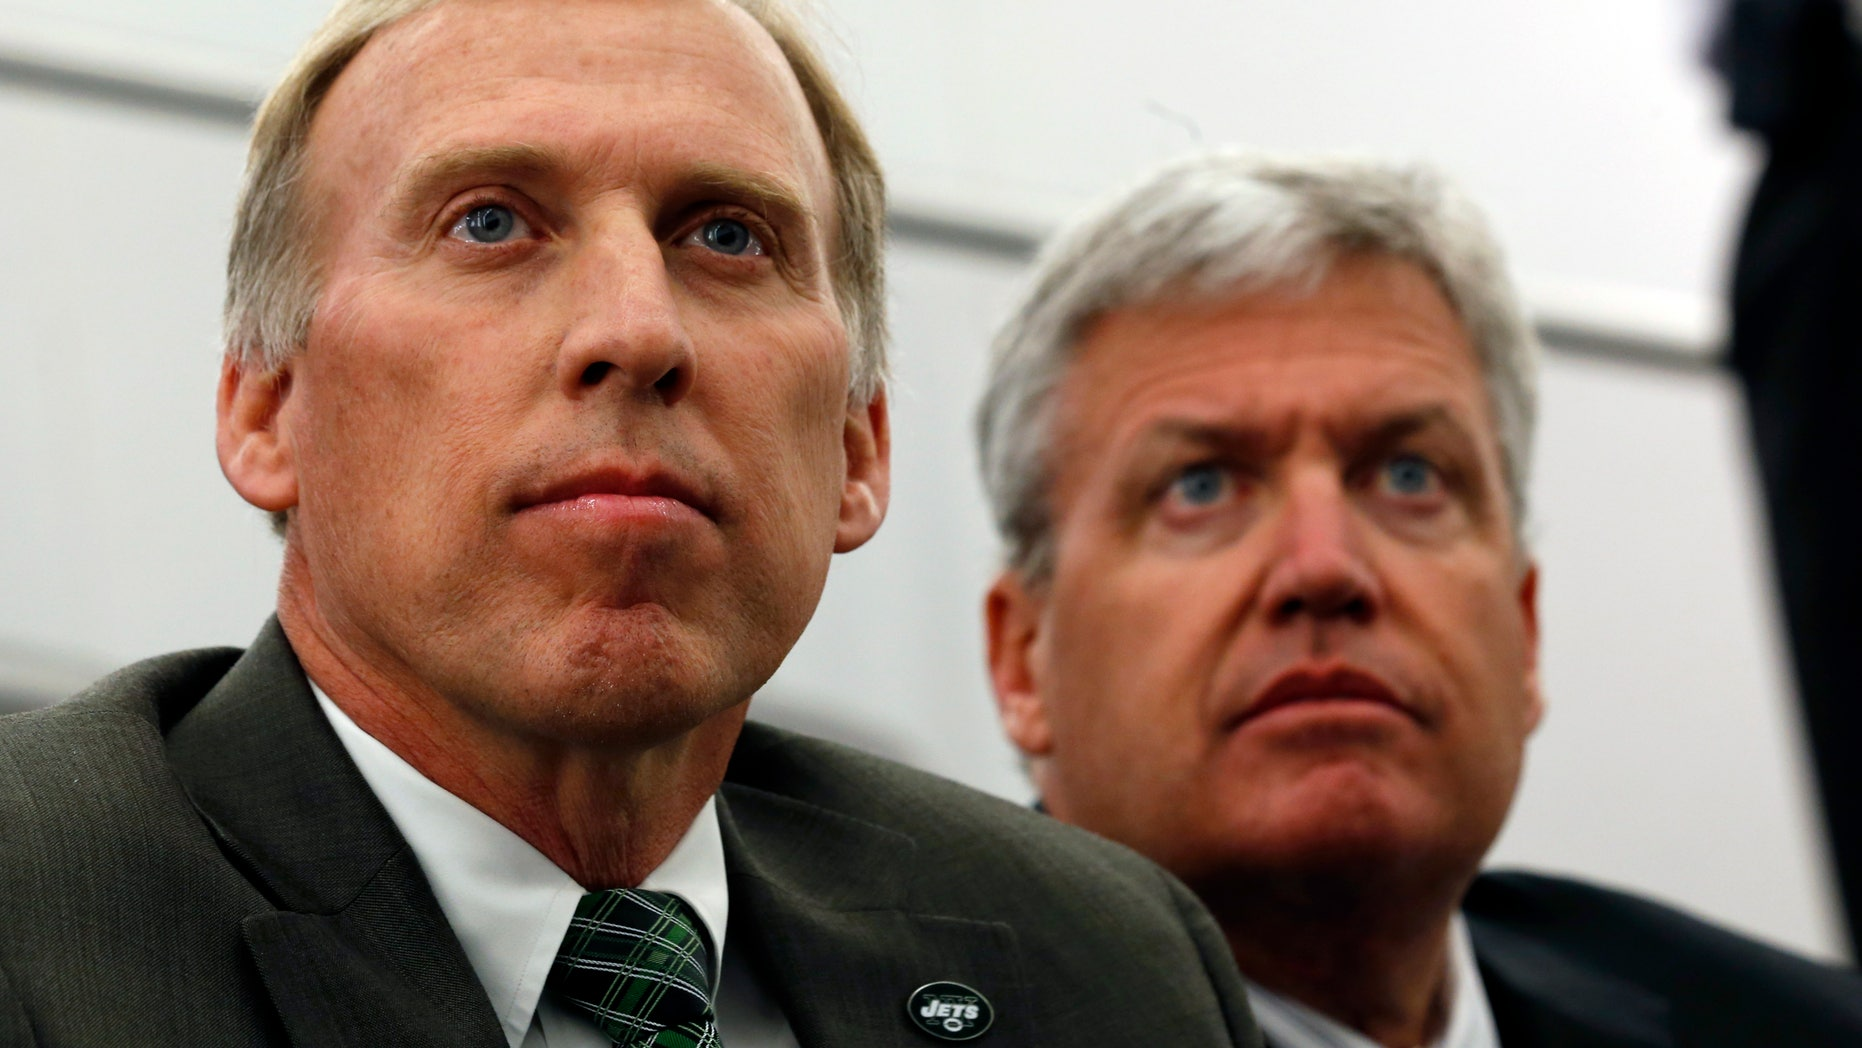 FILE - In this Jan. 24, 2013 file photo, John Idzik, left, sits next to New York Jets head coach Rex Ryan while waiting to be introduced as the Jets new general manager during an NFL football news conference in Florham Park, N.J. Idzik's first headline-making move as the Jets' general manager was trading away his best player. Idzik will now try to find a few guys who can help get the franchise _ which was a win away from the Super Bowl in the 2009 and '10 seasons _ back on track. (AP Photo/Julio Cortez, File)